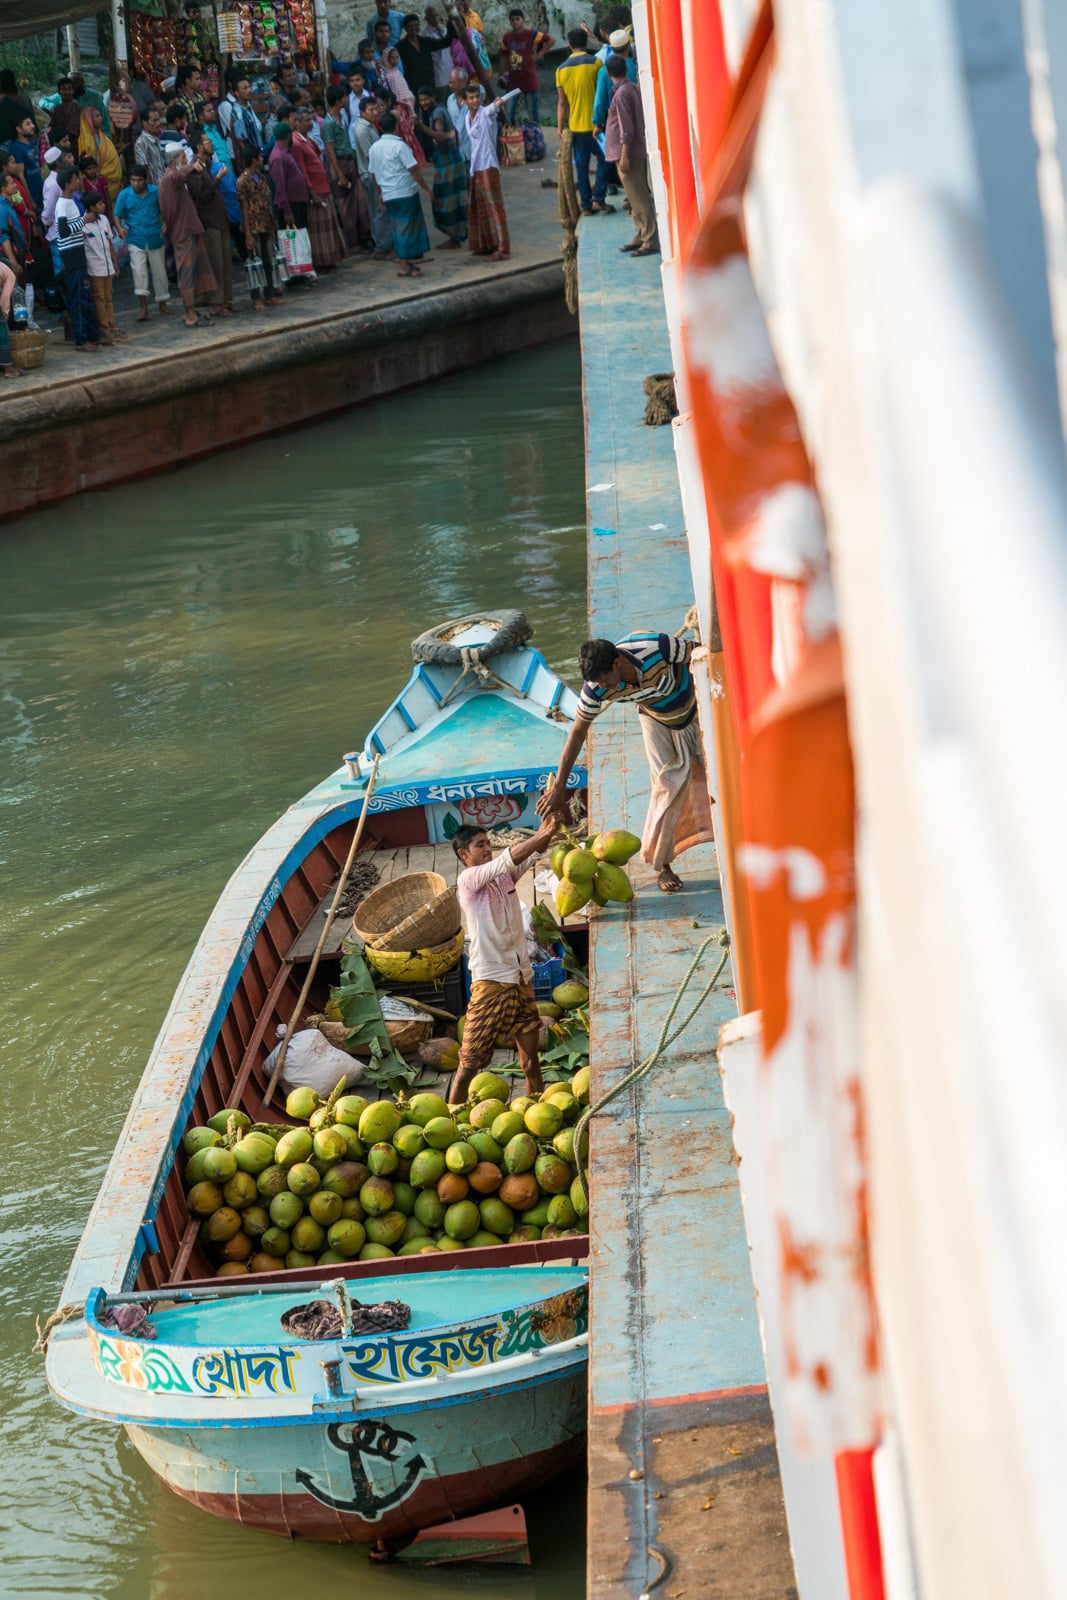 Men loading coconuts onto a launch ferry boat on the Kaliganga river in Bangladesh.